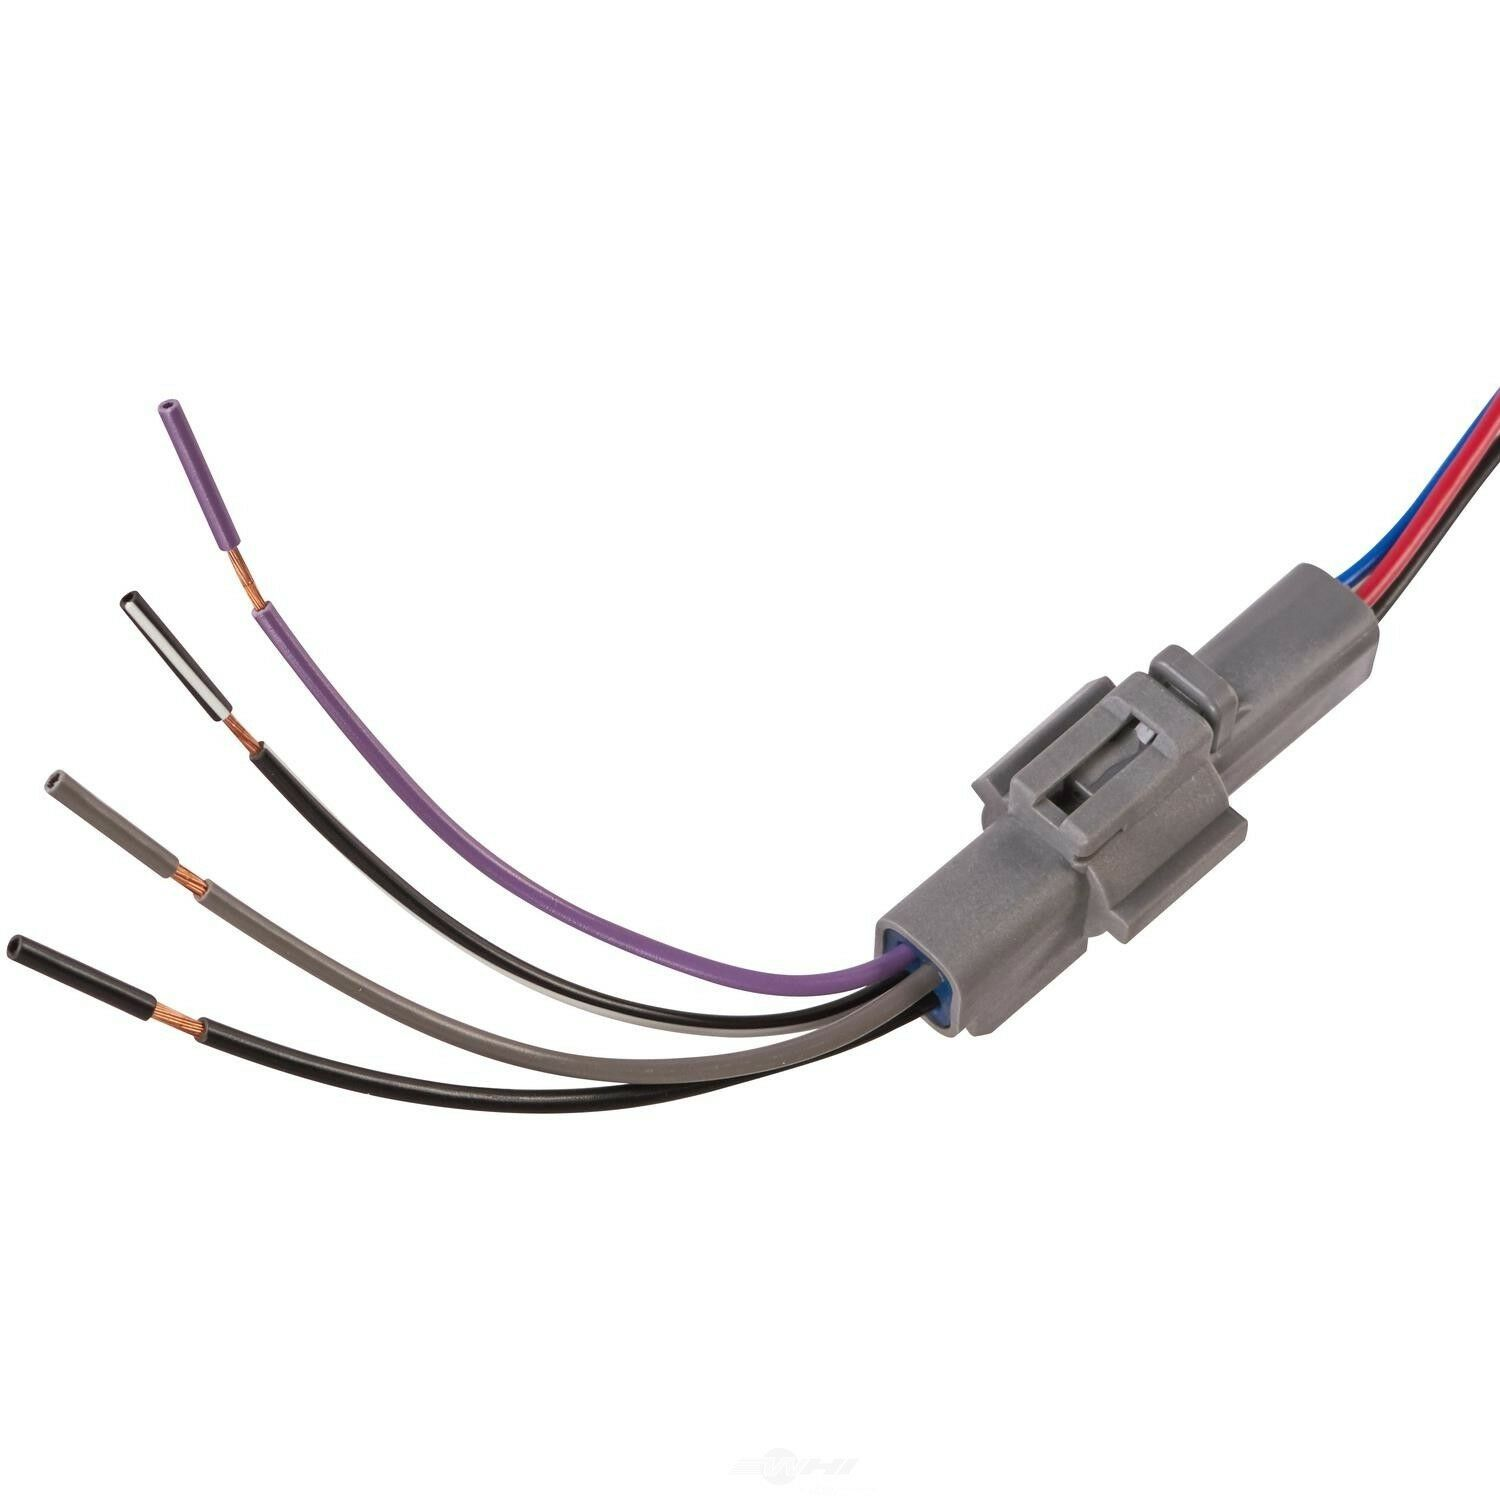 Best Spectra Fuel Pump Wiring Diagram Contemporary - Electrical ...